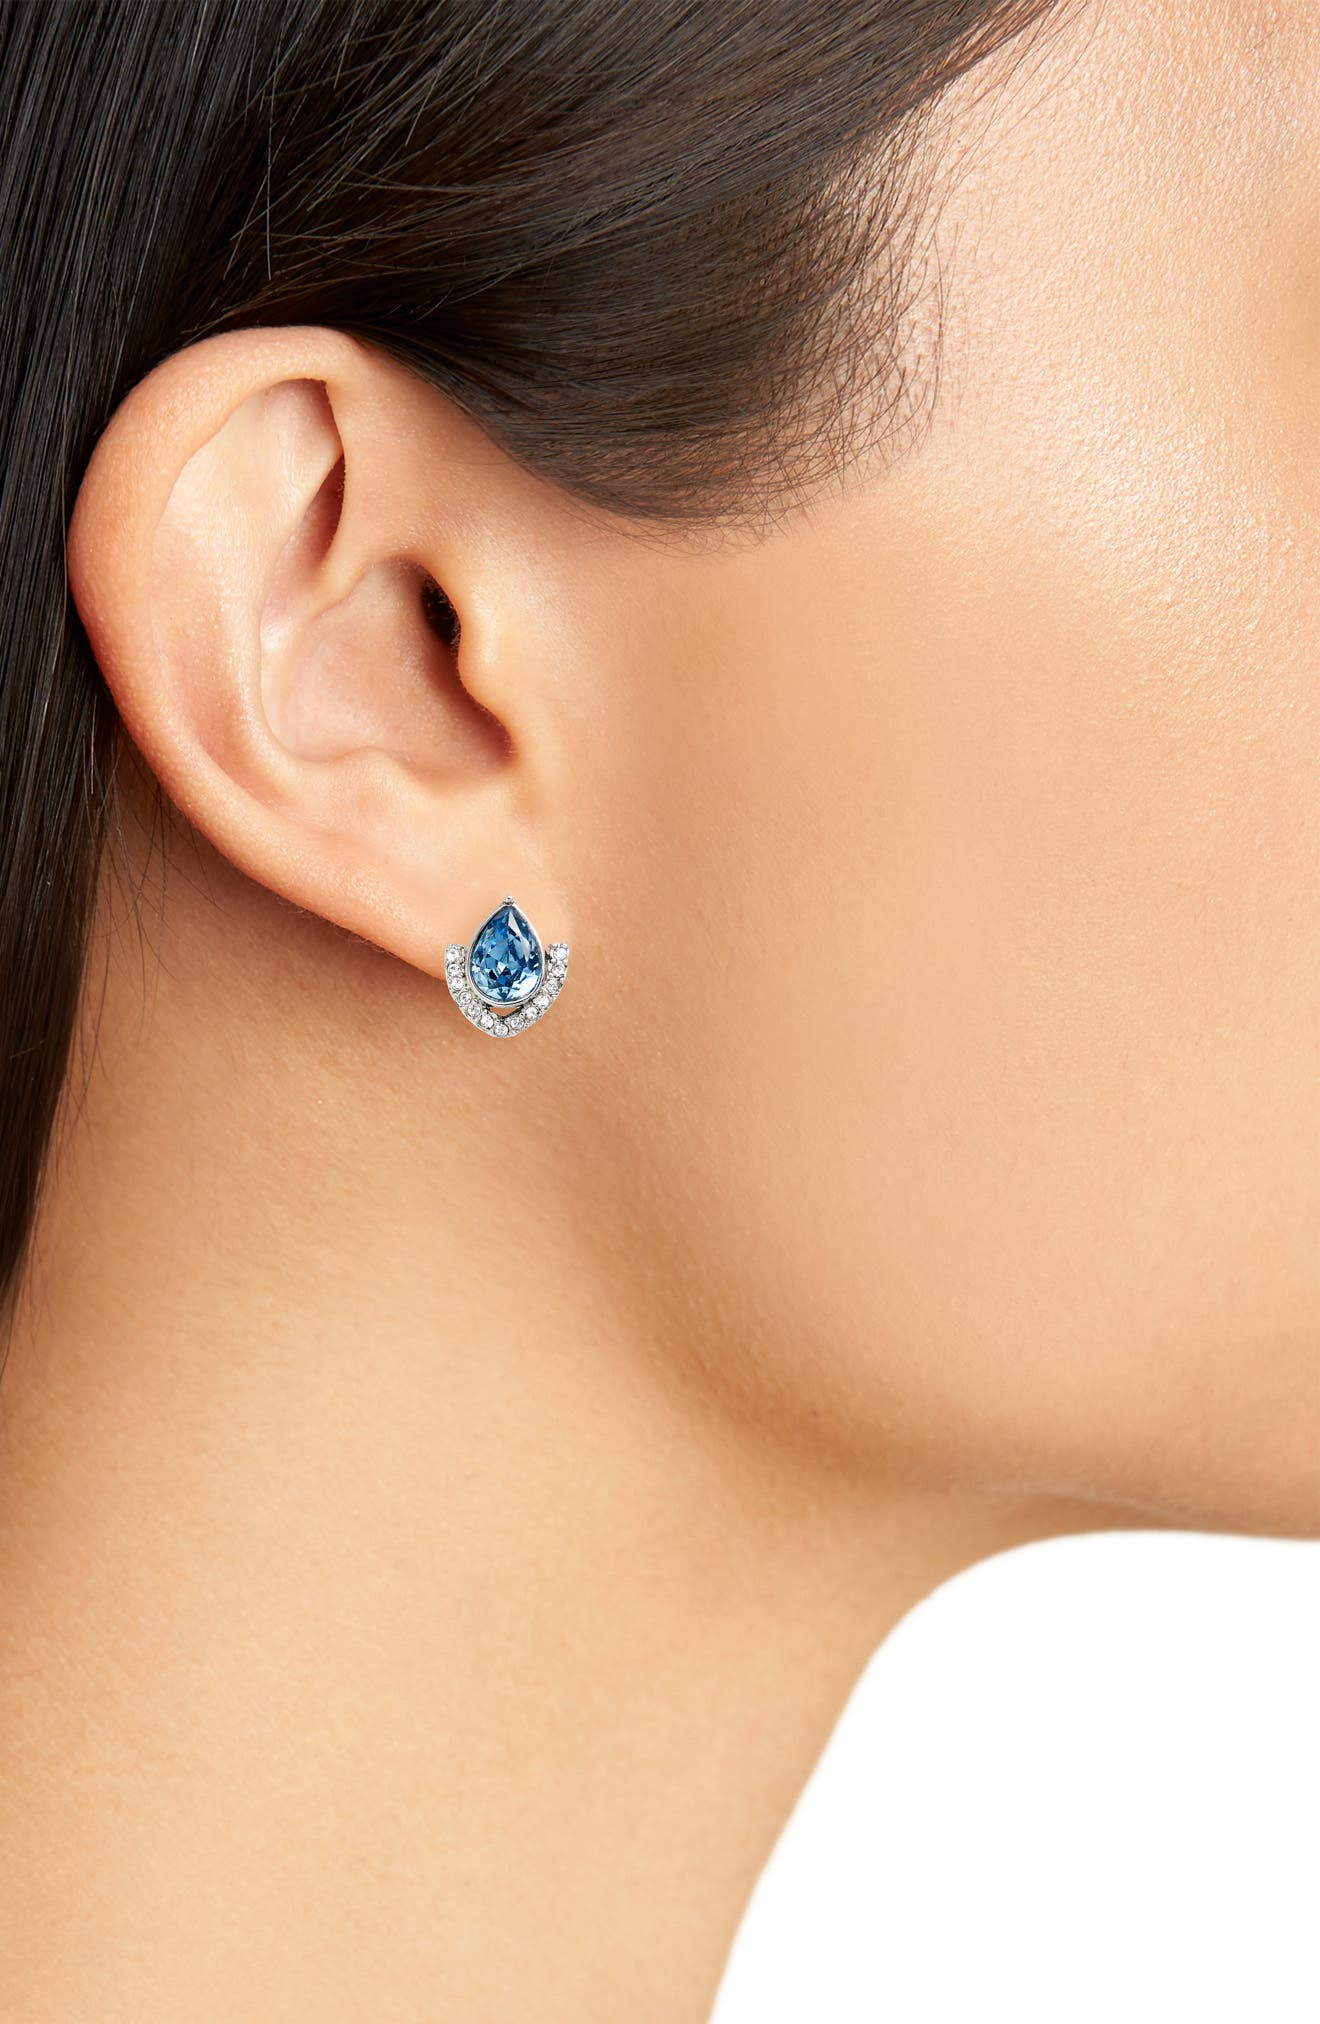 Stud Earrings,                             Alternate thumbnail 2, color,                             Silver/ Cry/ Blue